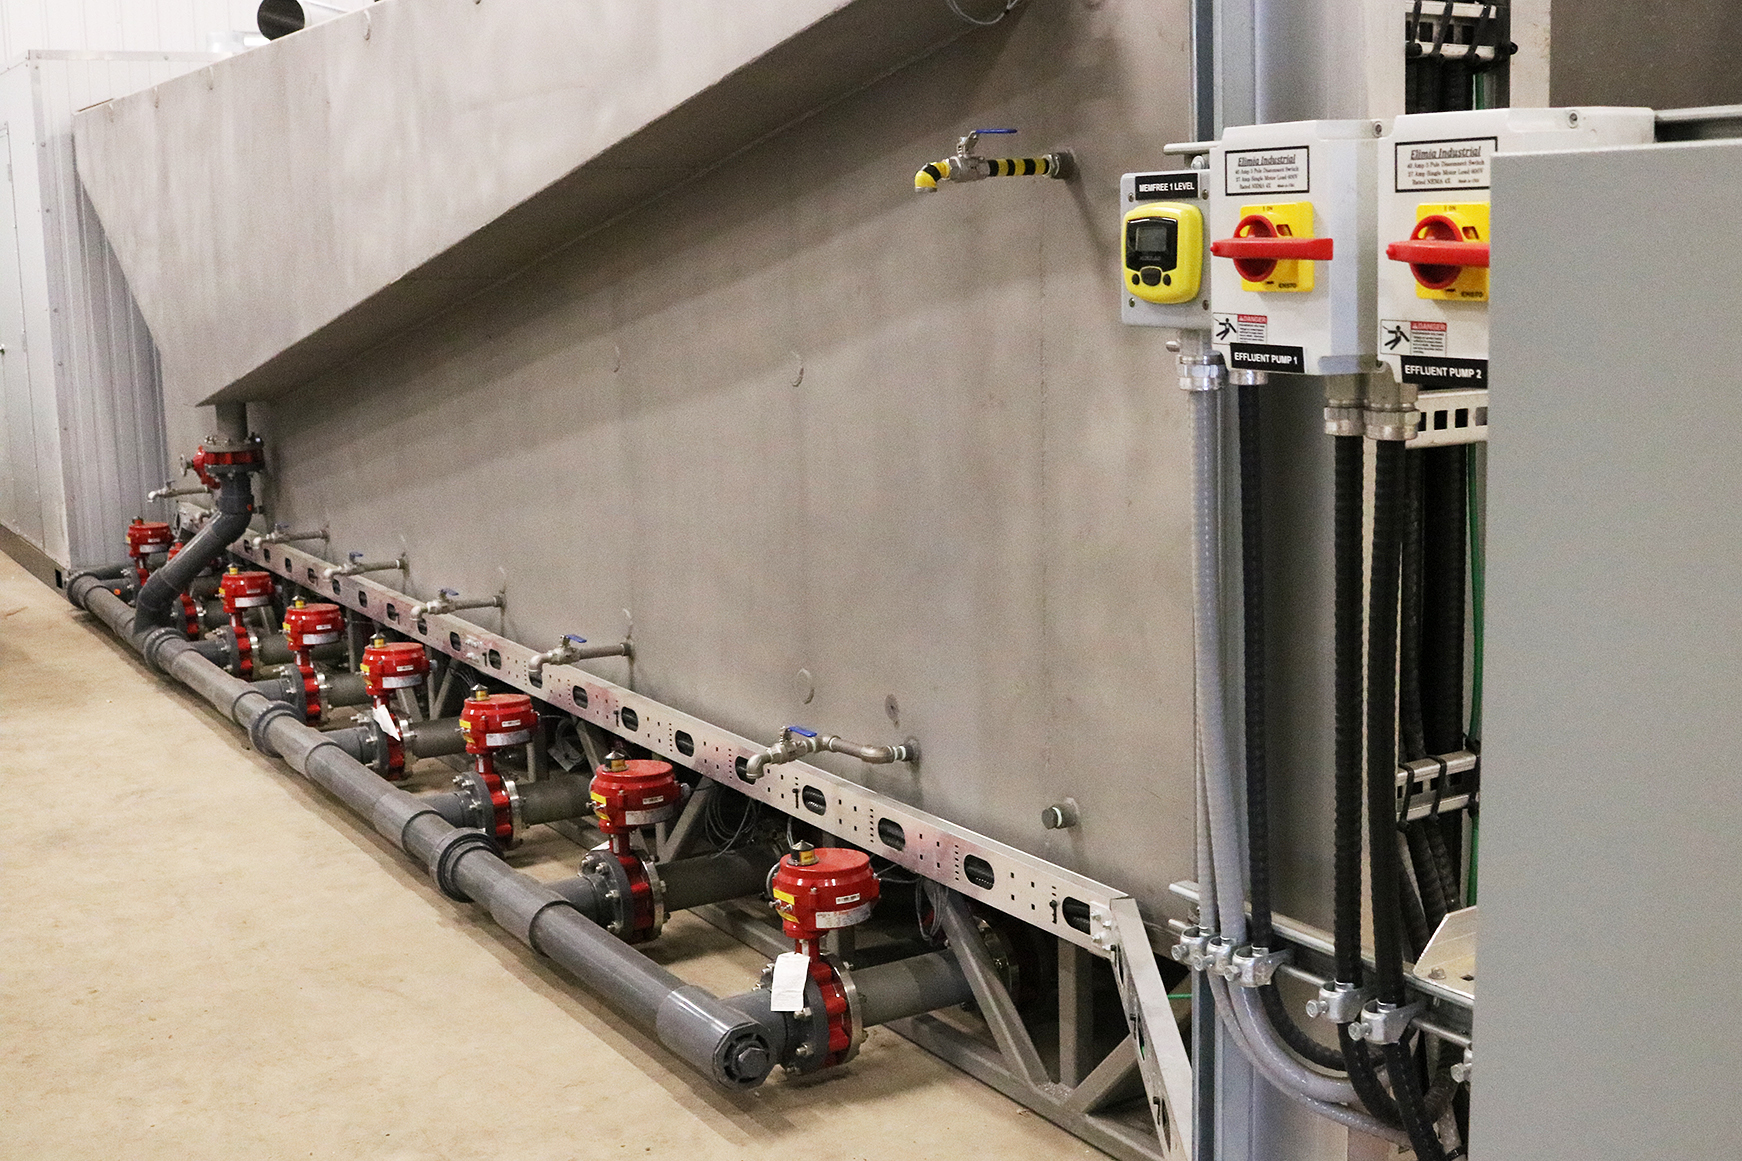 Tecvalco manufactured this MemFree wastewater system